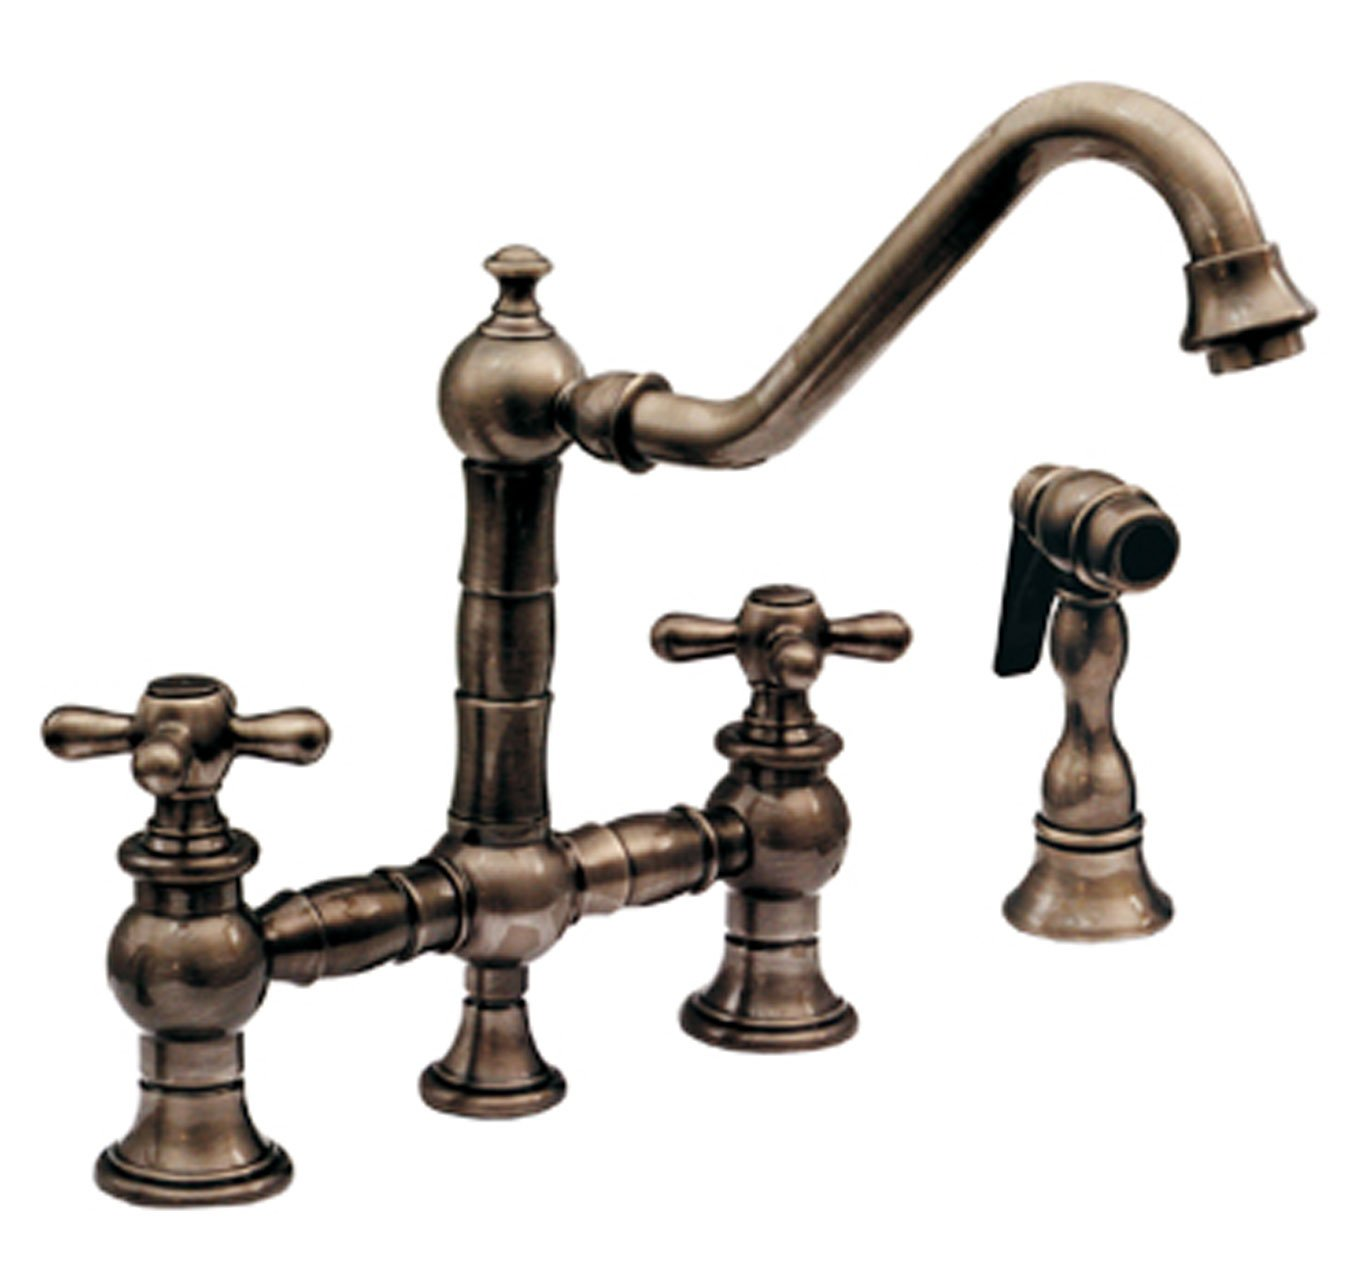 Whitehaus WHKBTCR3-9201-AB Vintage III Kitchen Bridge Faucet with ...